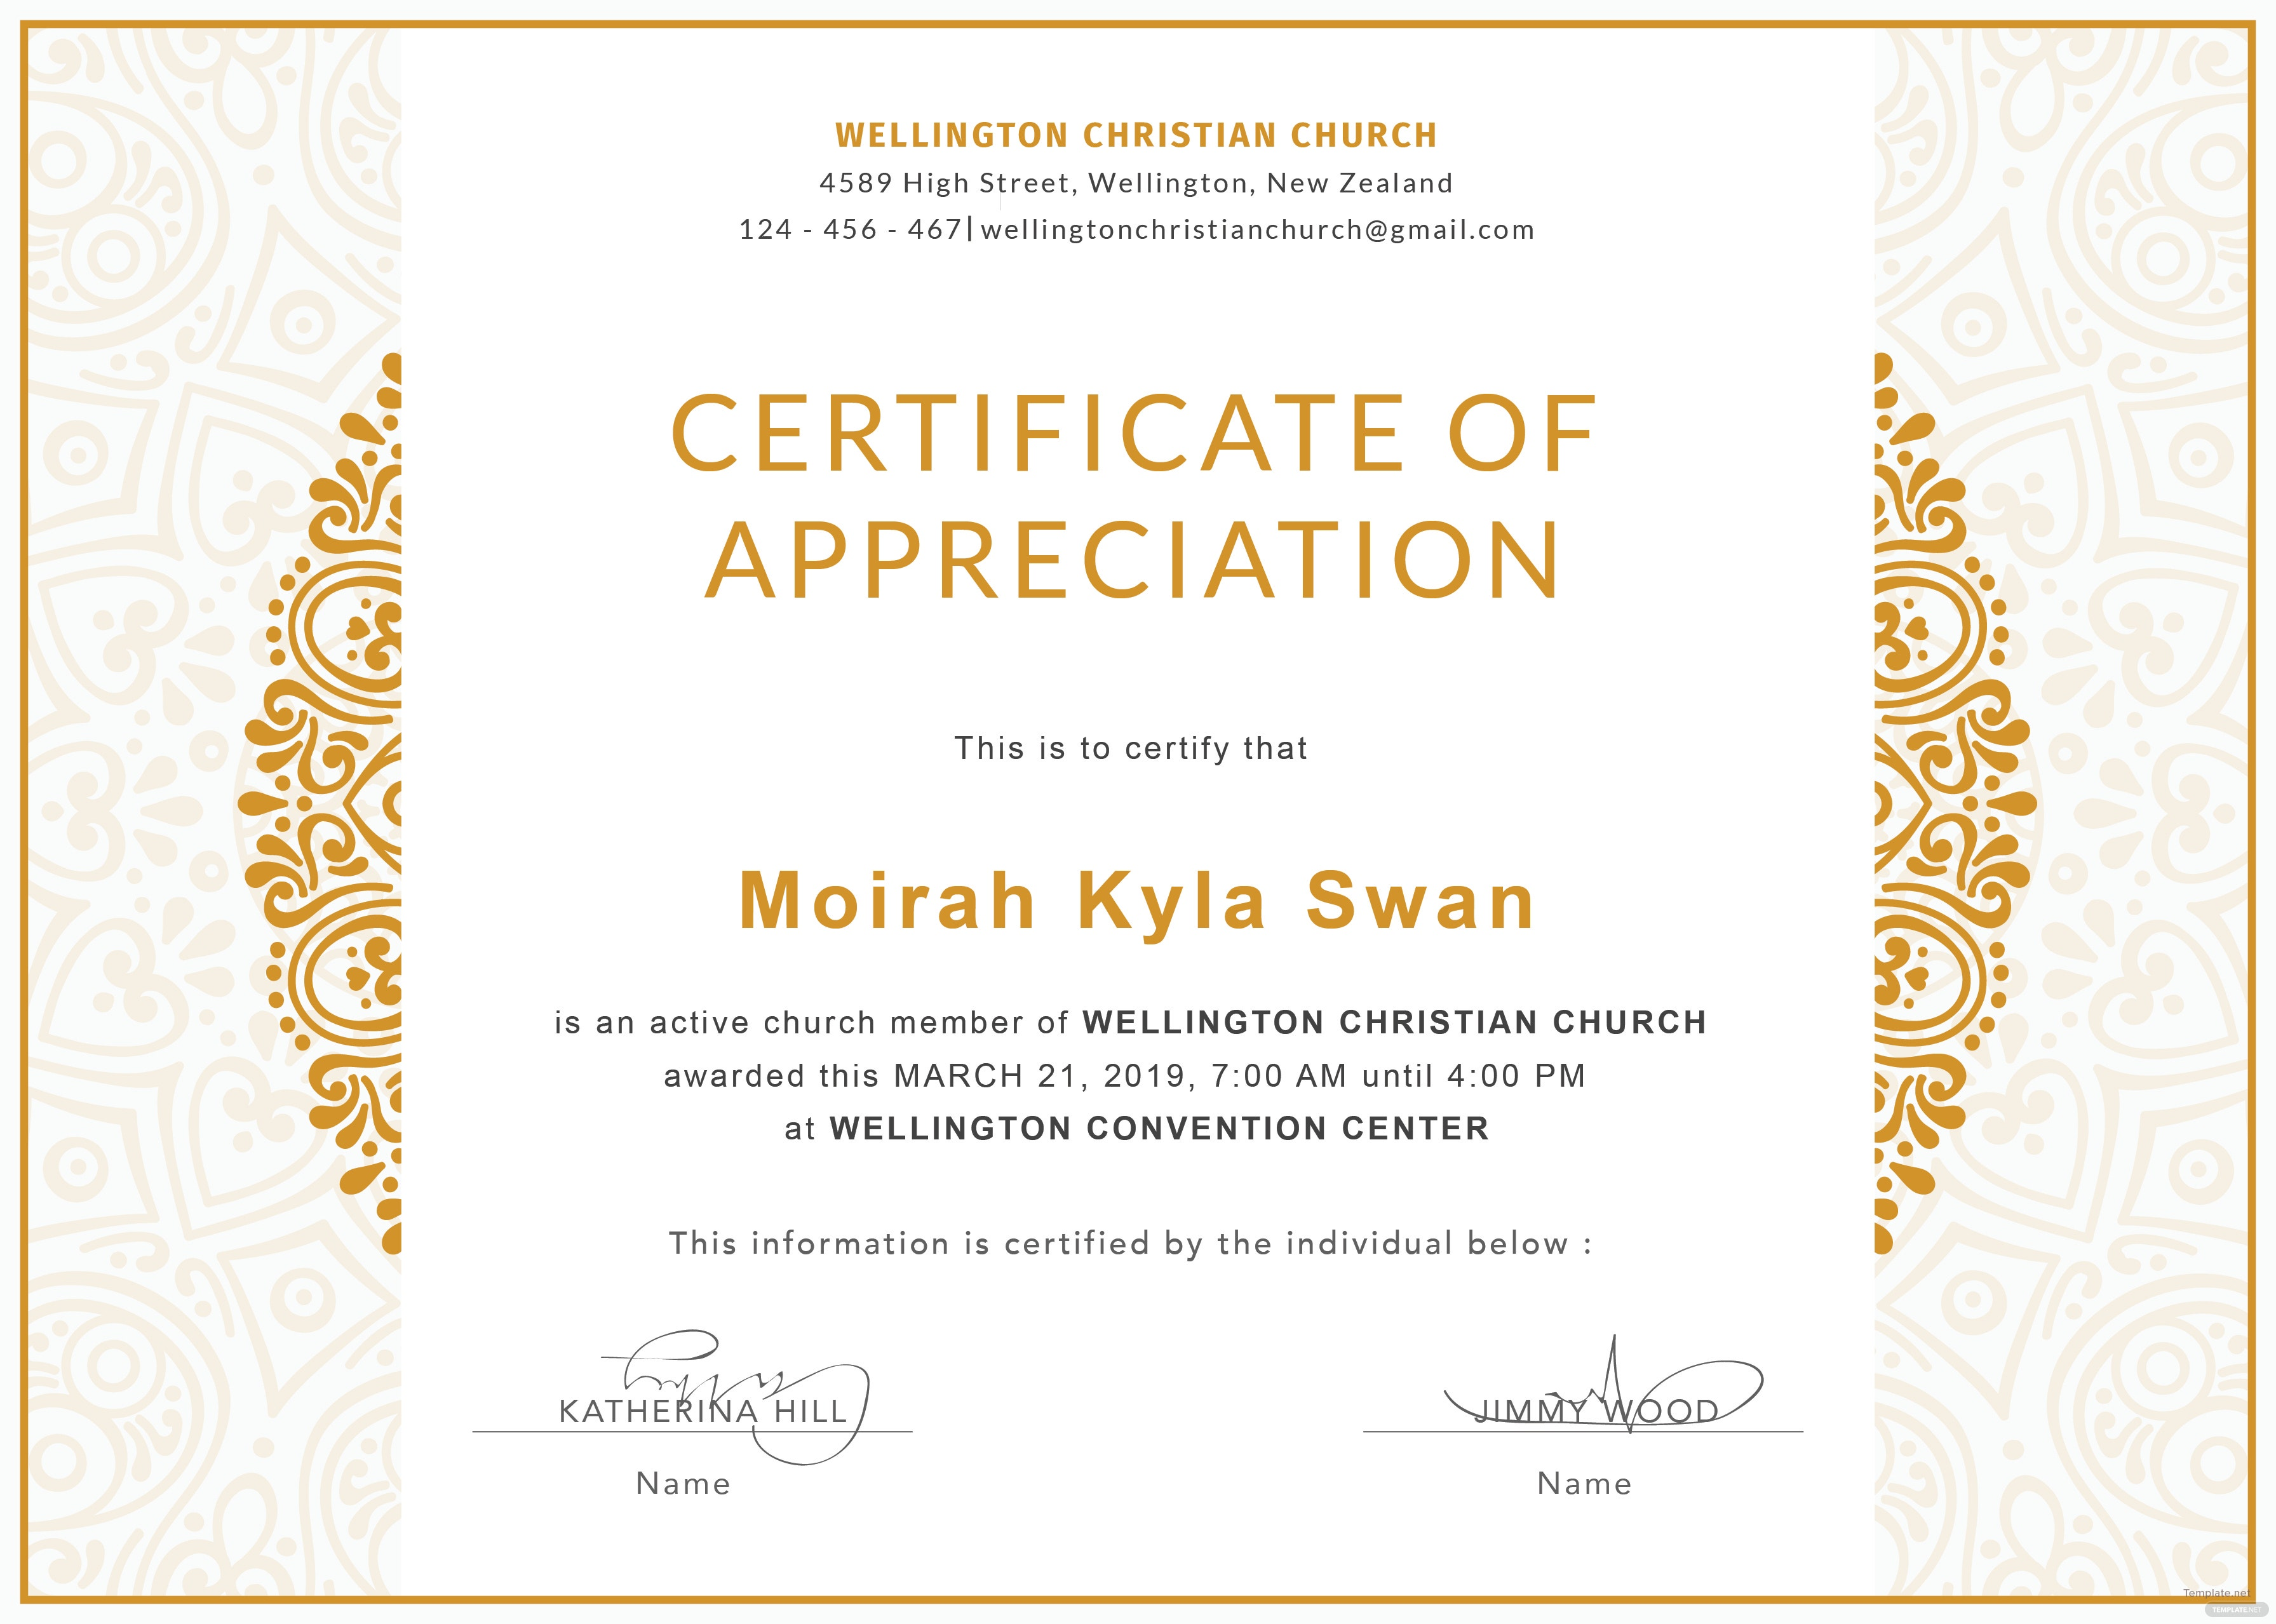 Fine church certificates templates illustration documentation free church certificate of appreciation template in adobe photoshop yadclub Image collections